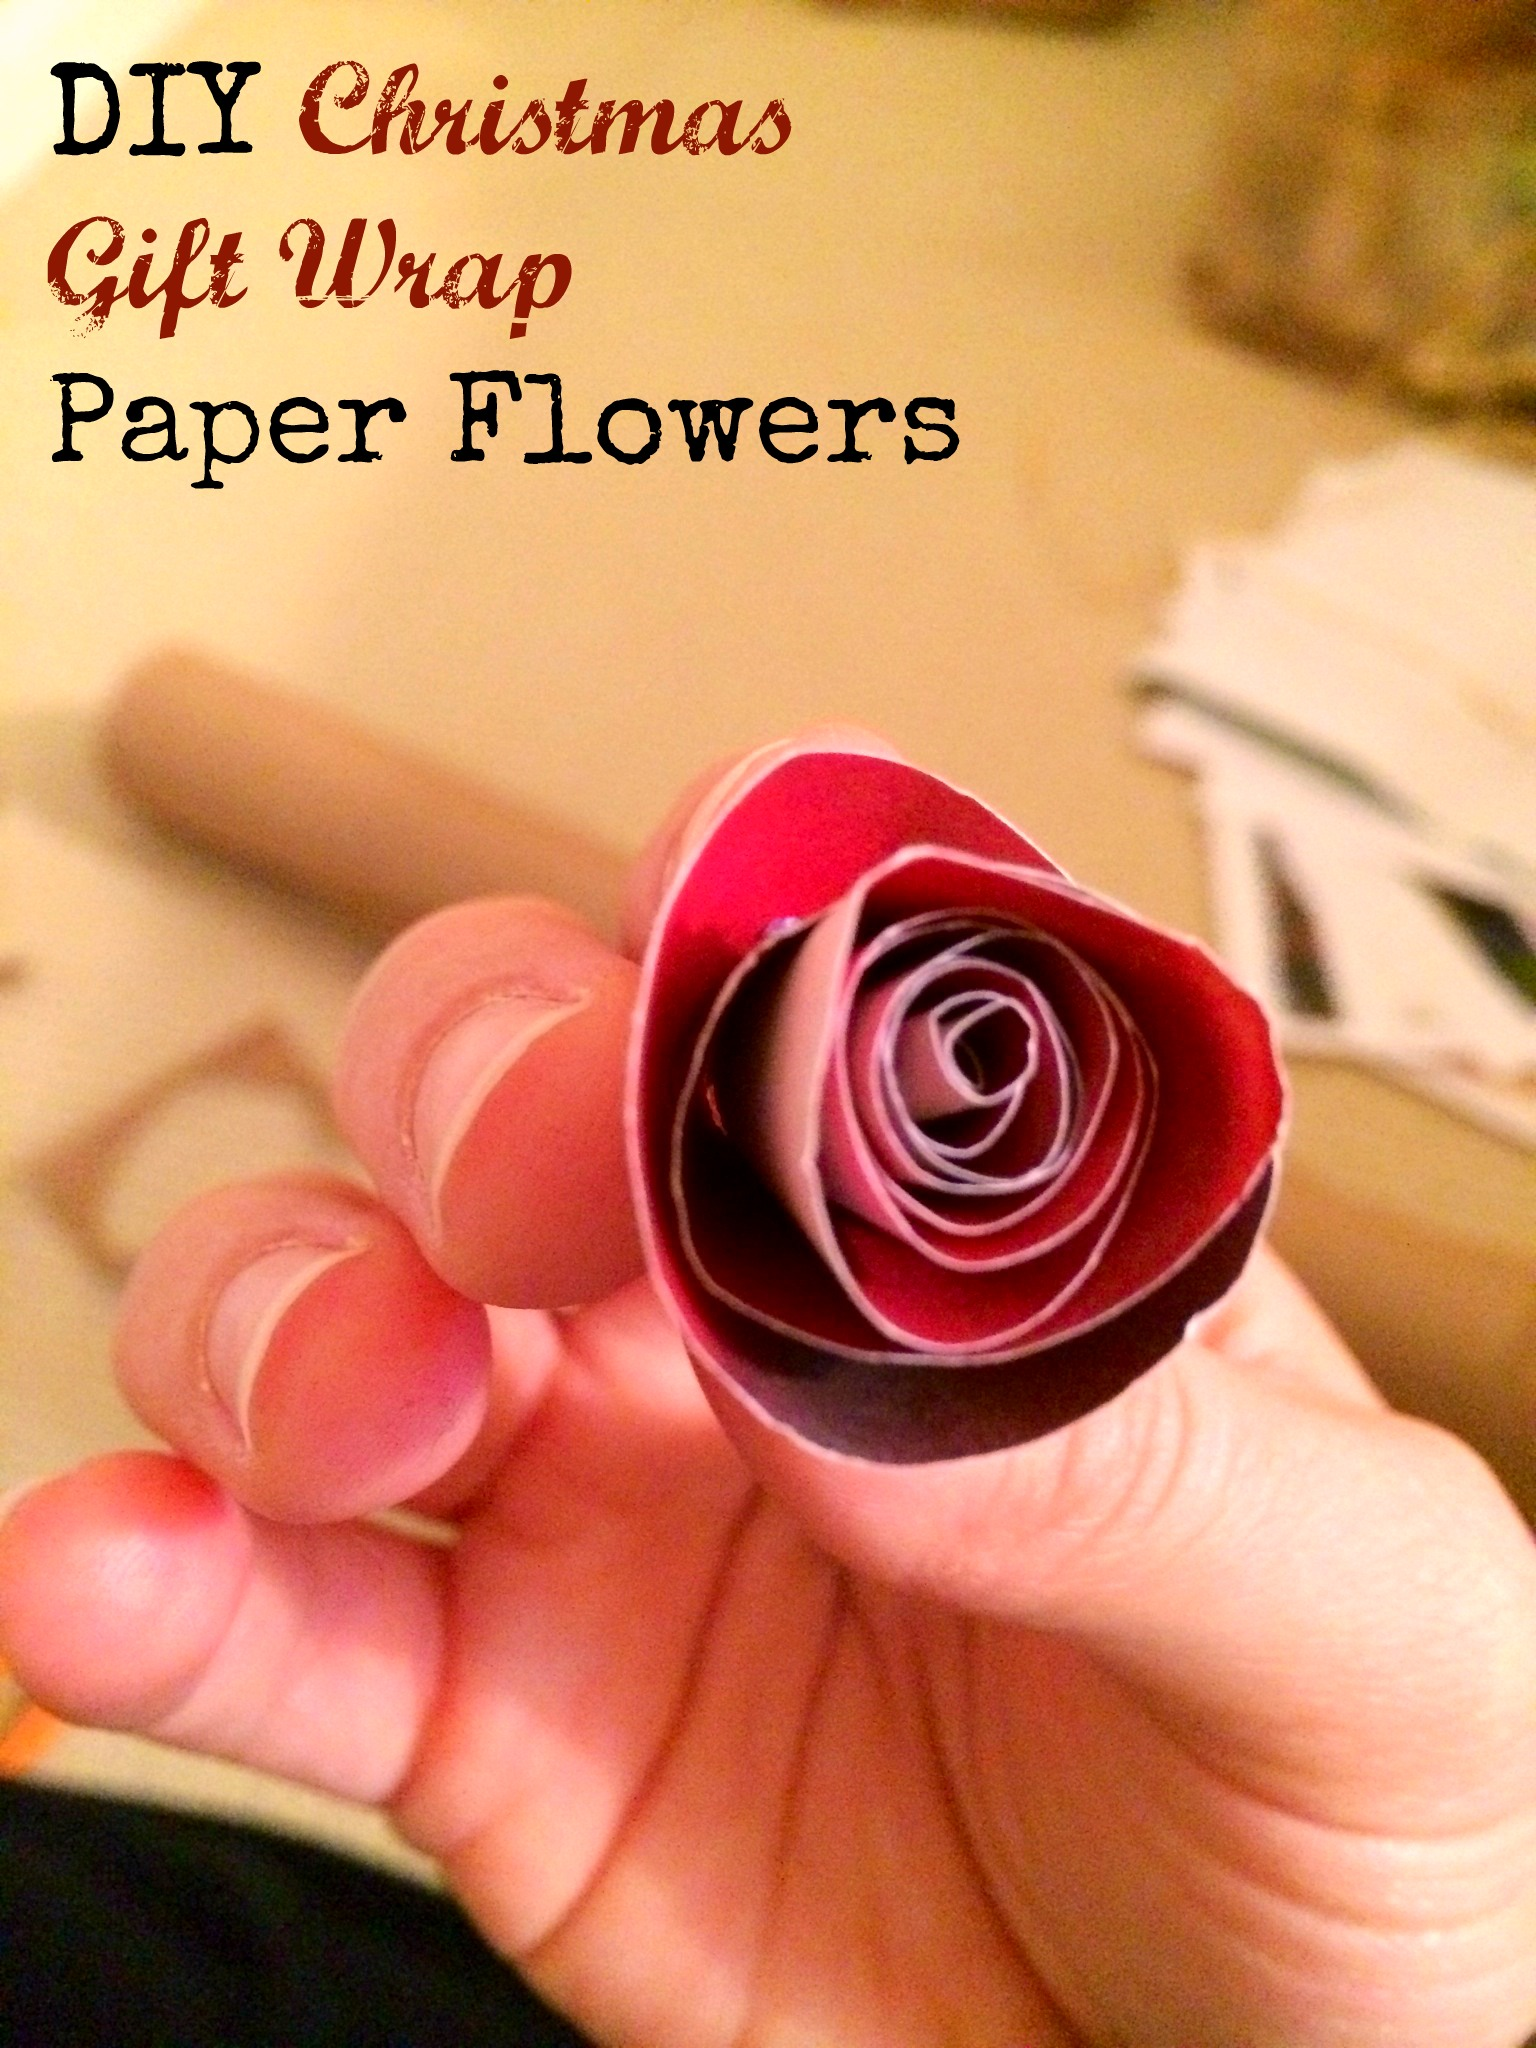 Diy christmas gift wrap paper flowers mba sahm these diy paper flowers are made out of wrapping paper and are so cute and easy mightylinksfo